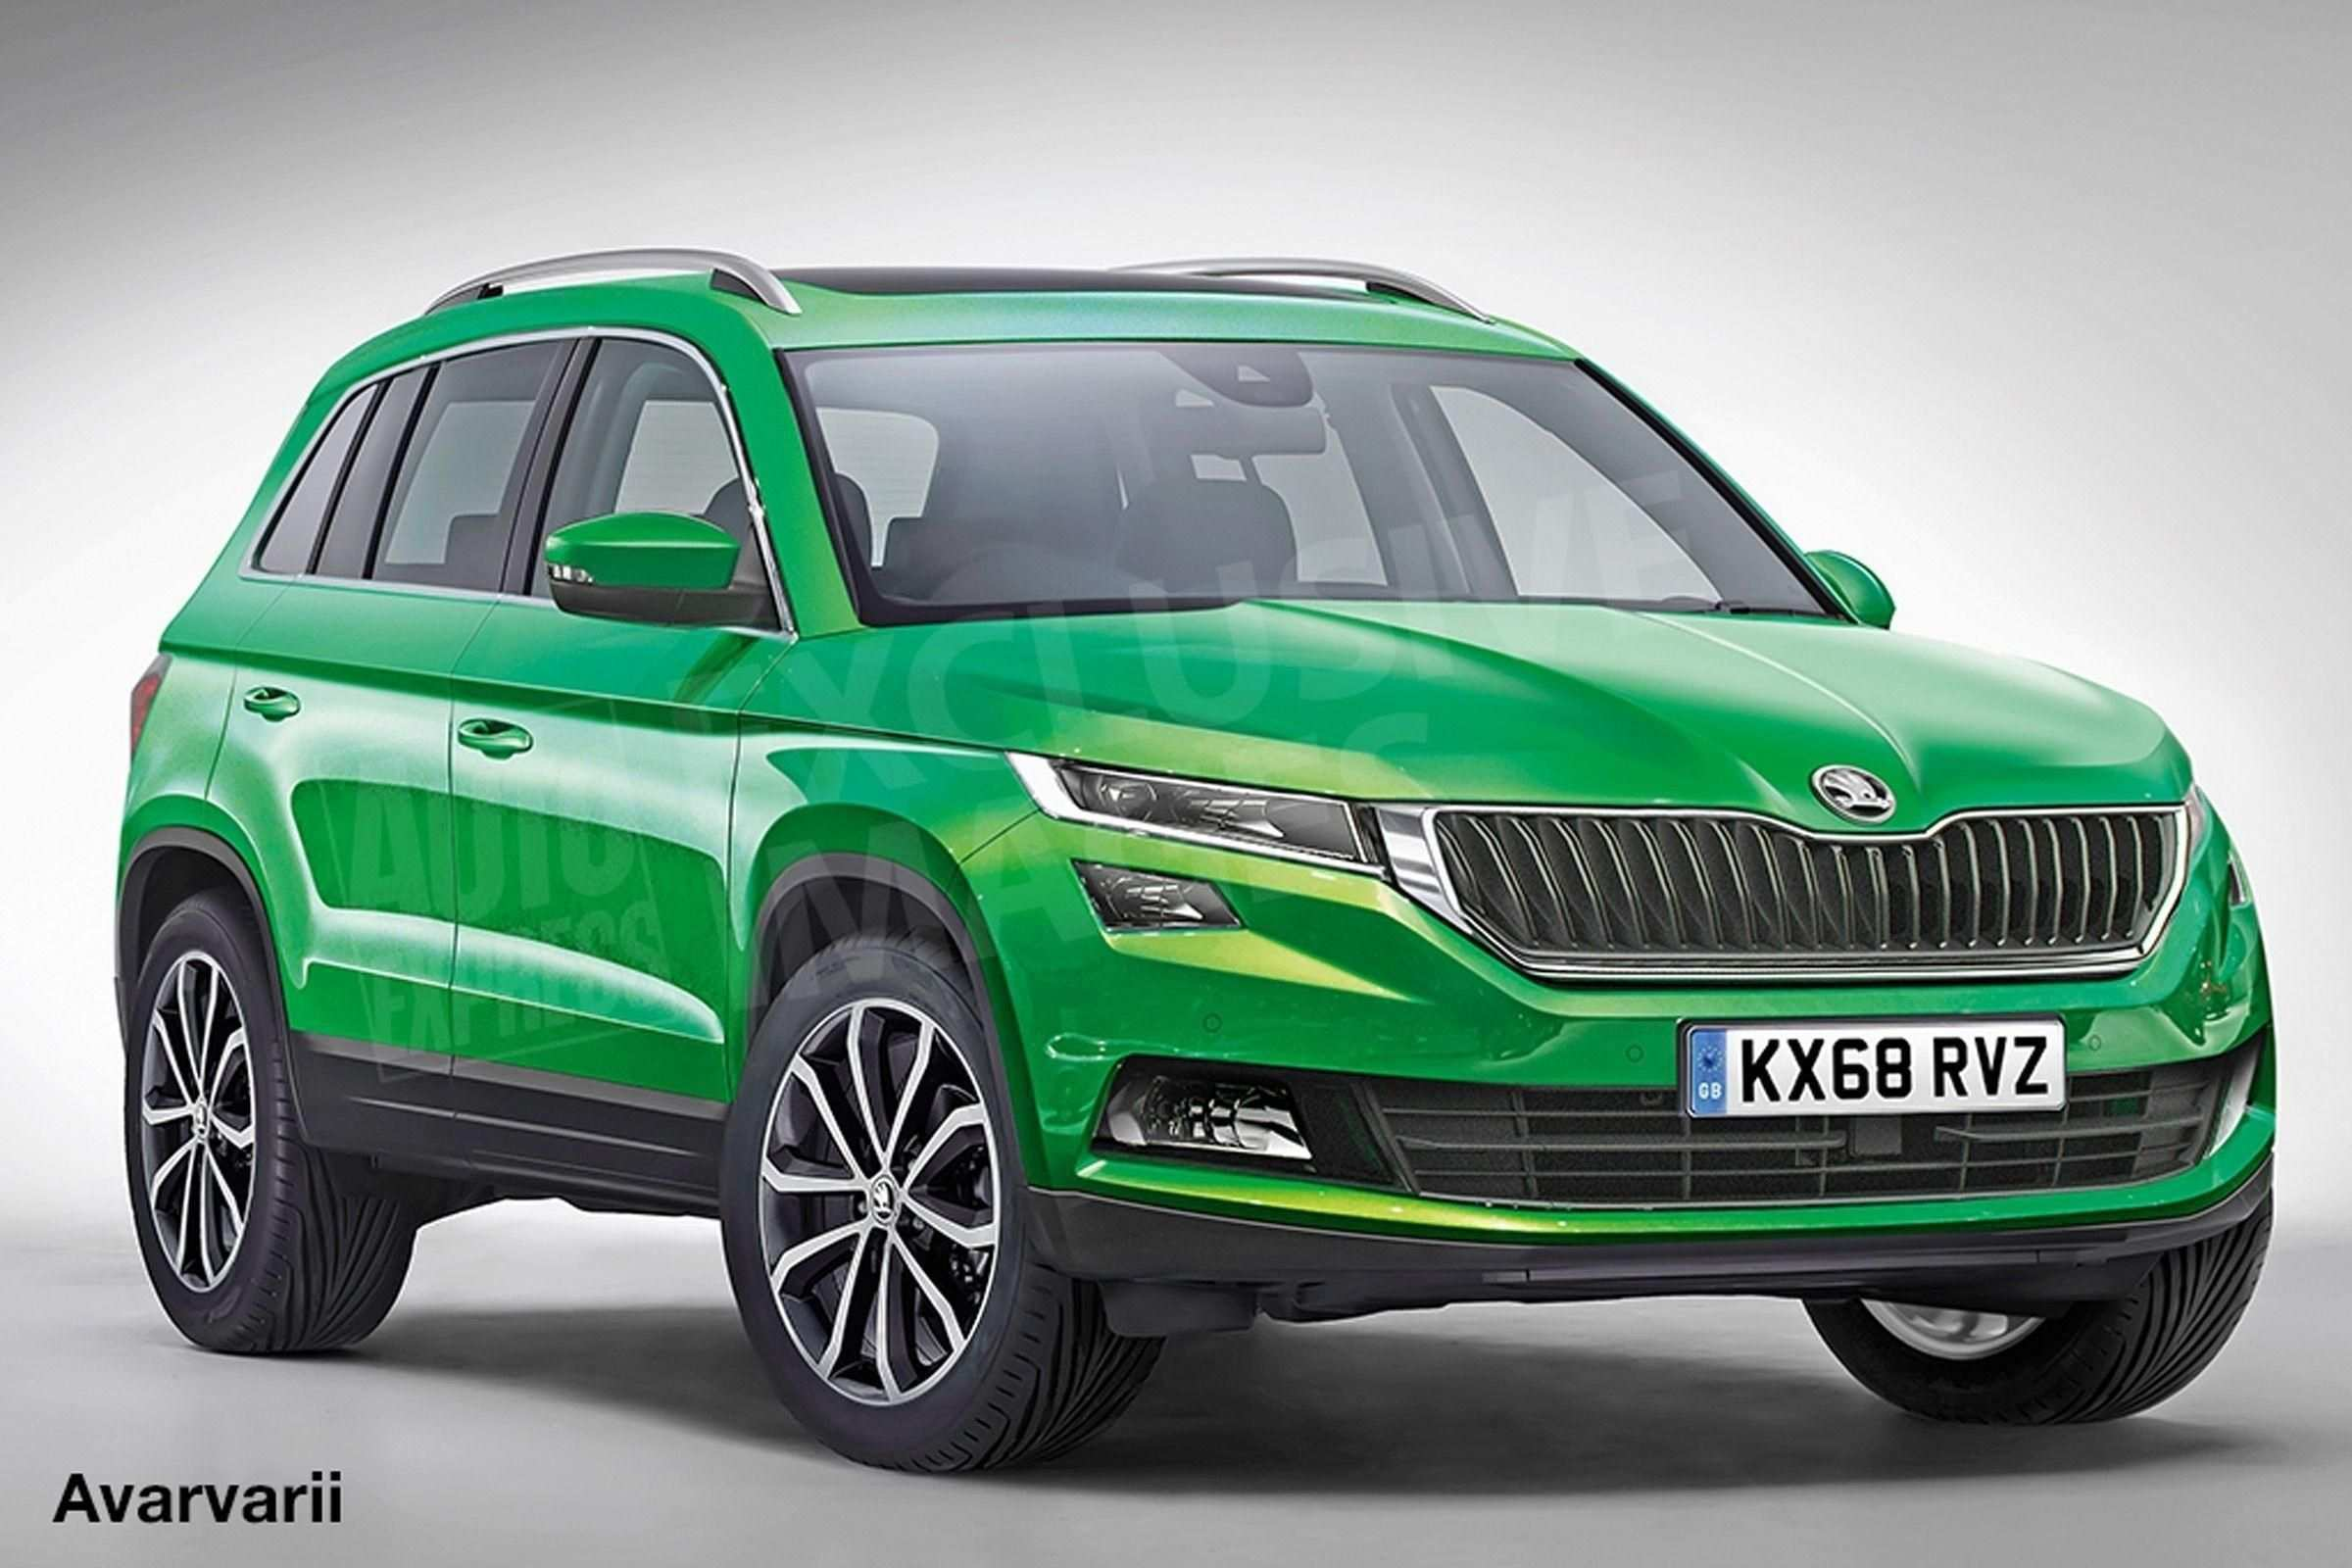 91 Great 2020 Skoda Yeti India Egypt Price and Review with 2020 Skoda Yeti India Egypt